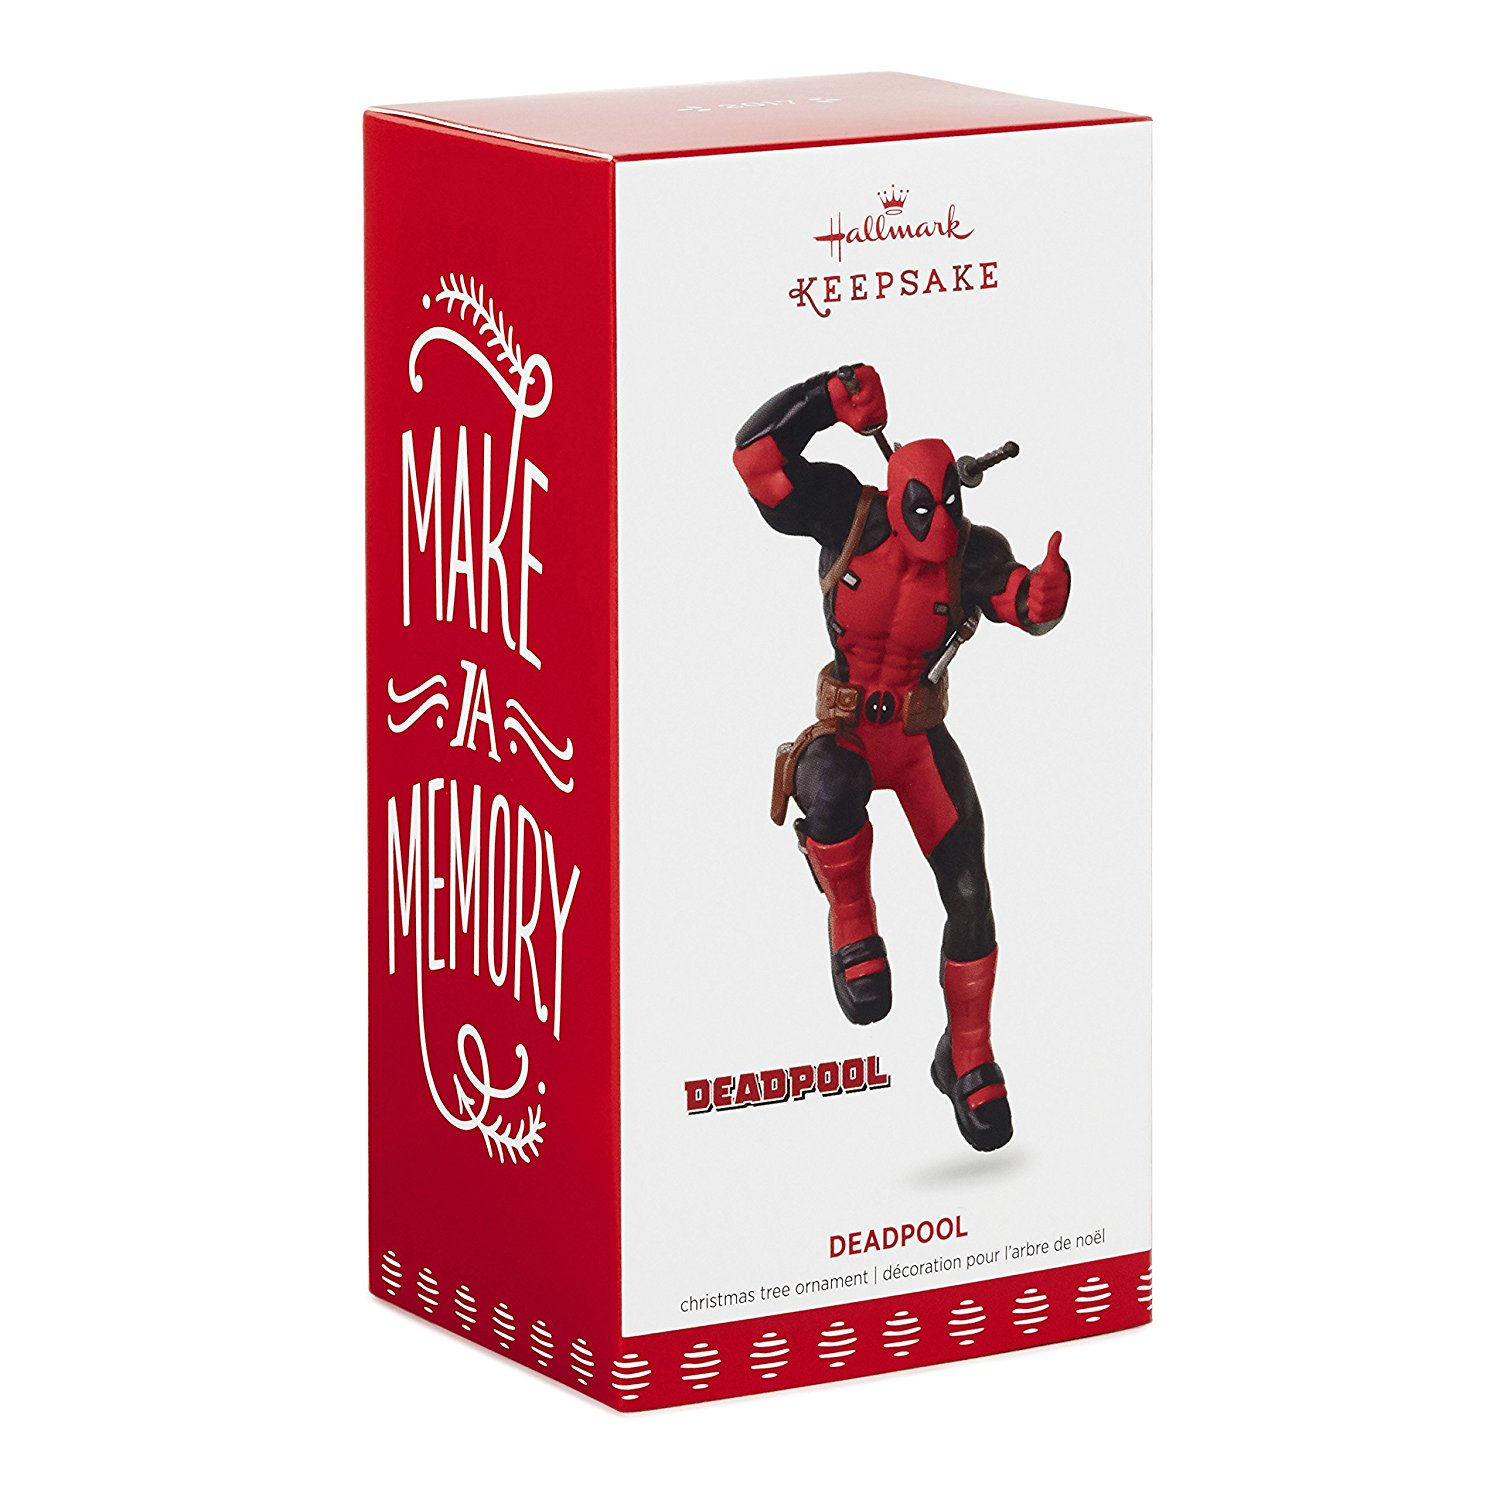 Hallmark Keepsake 2017 Deadpool Christmas Ornament